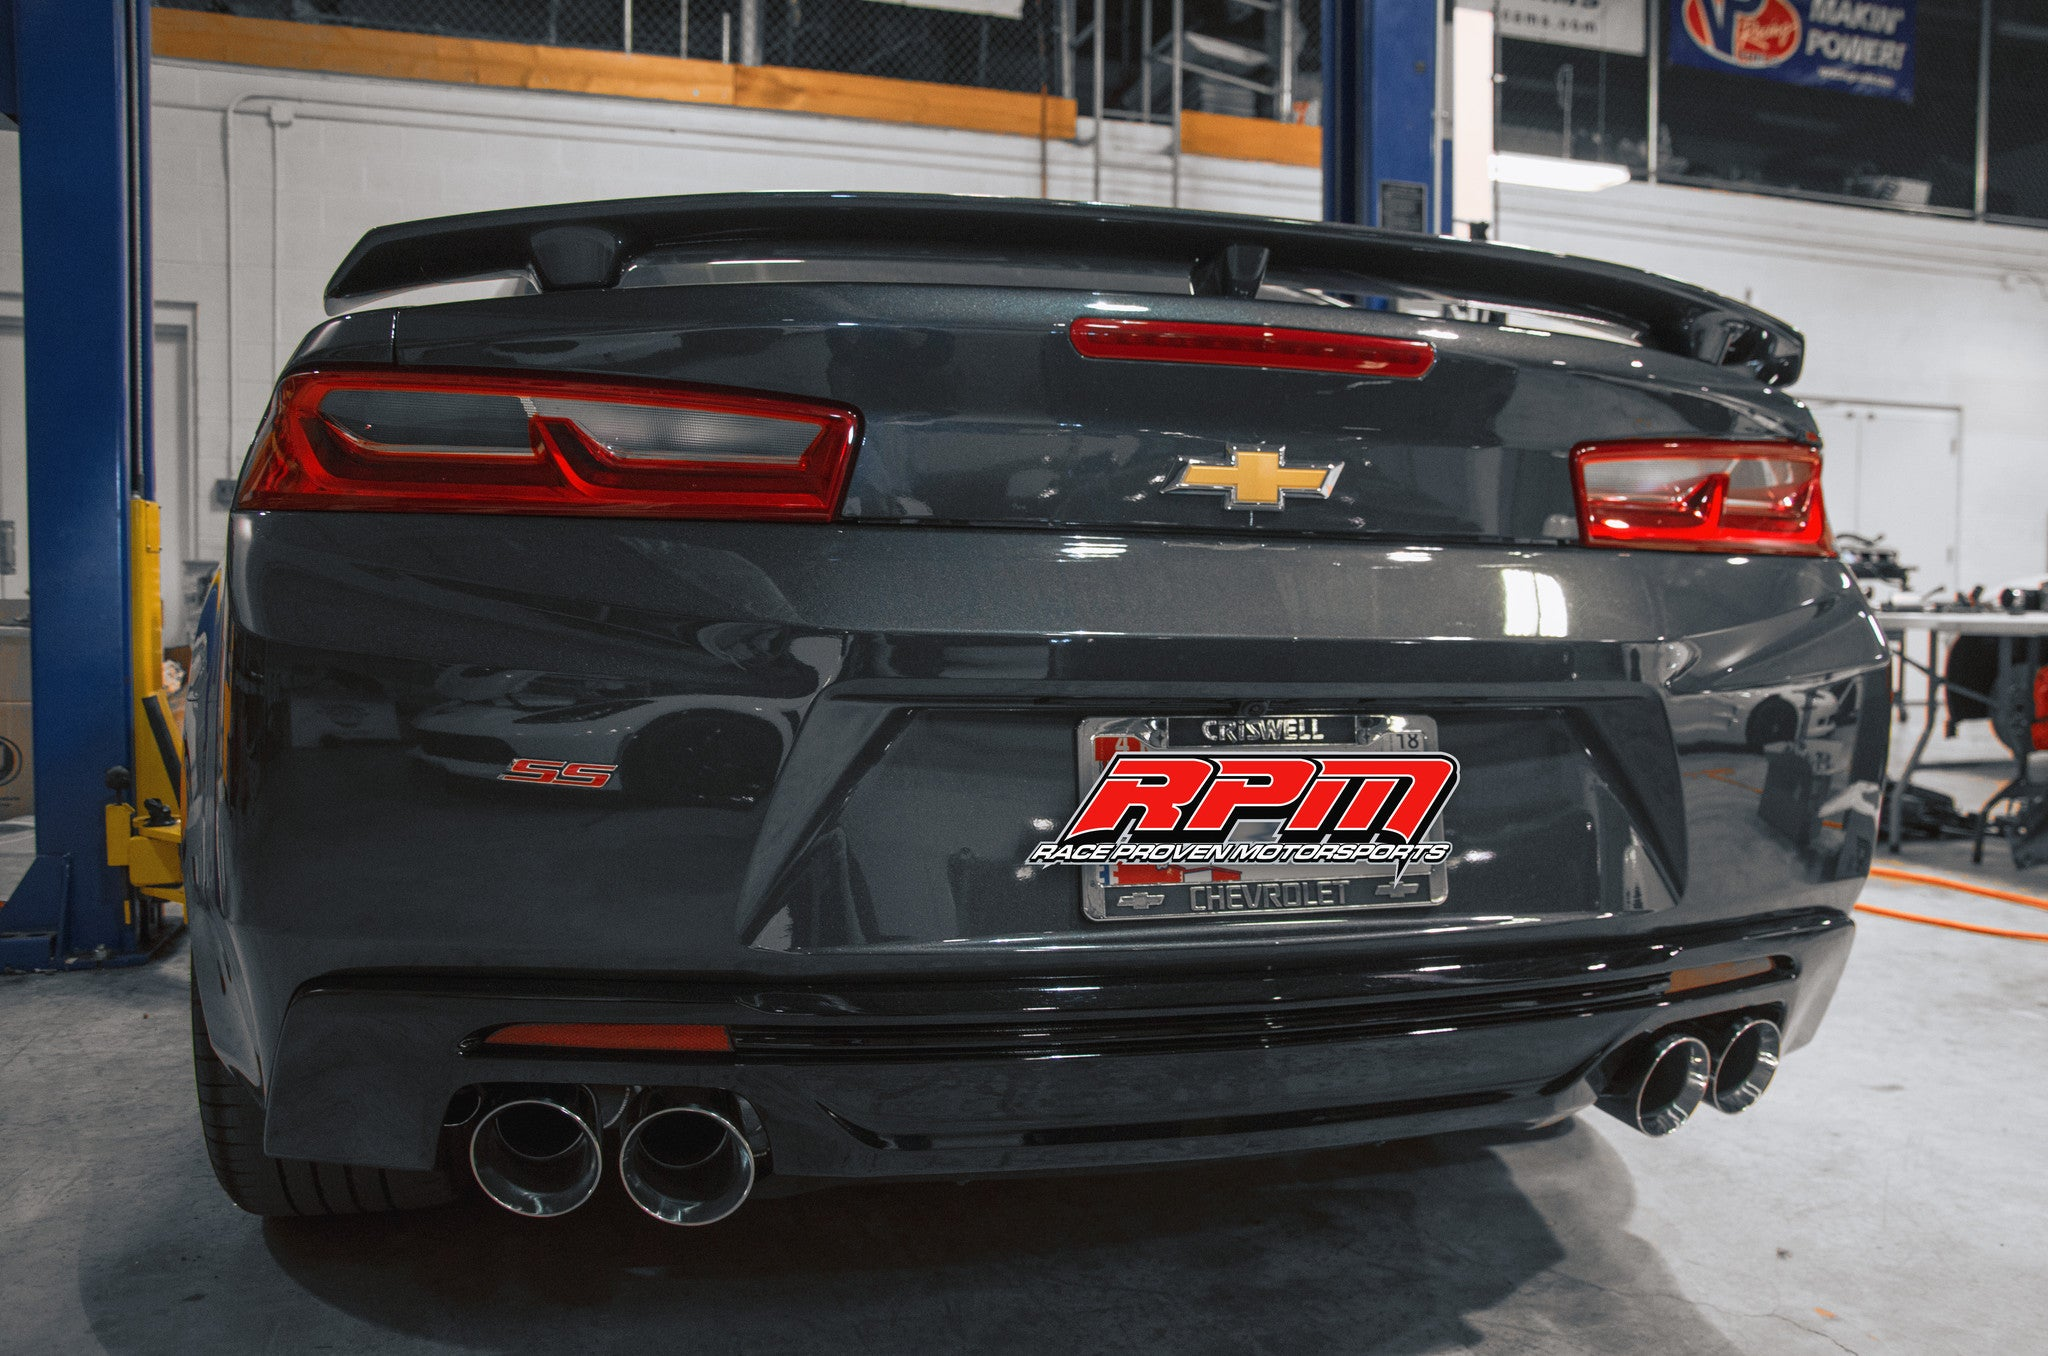 Stainless Works 6th Gen Camaro SS 2016 Full Exhaust System